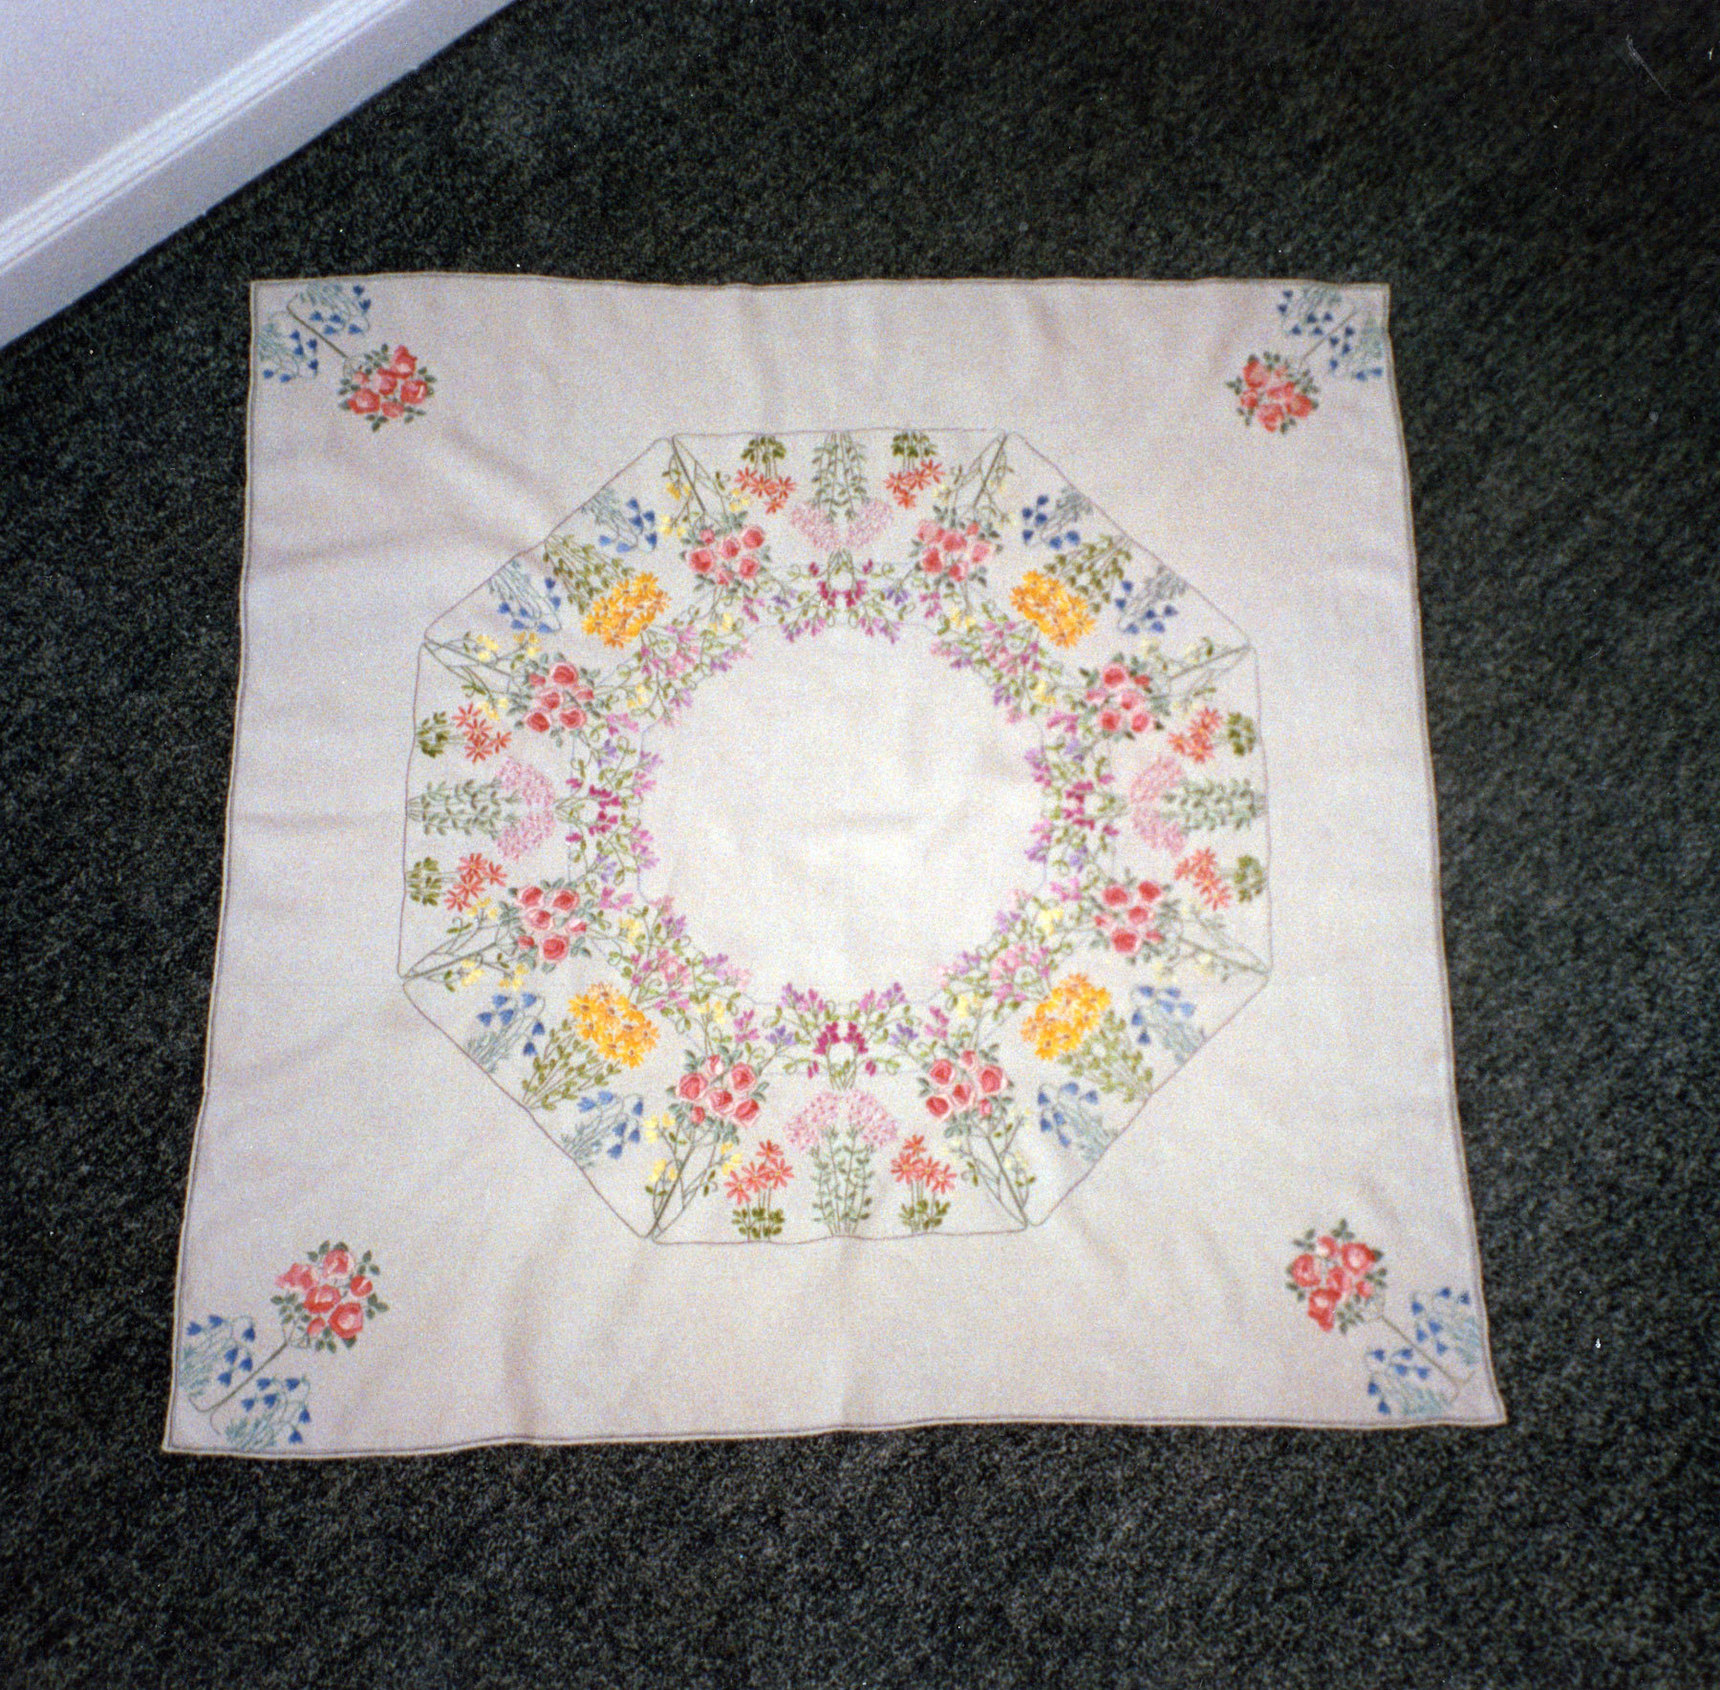 Embroidery Work c.1990